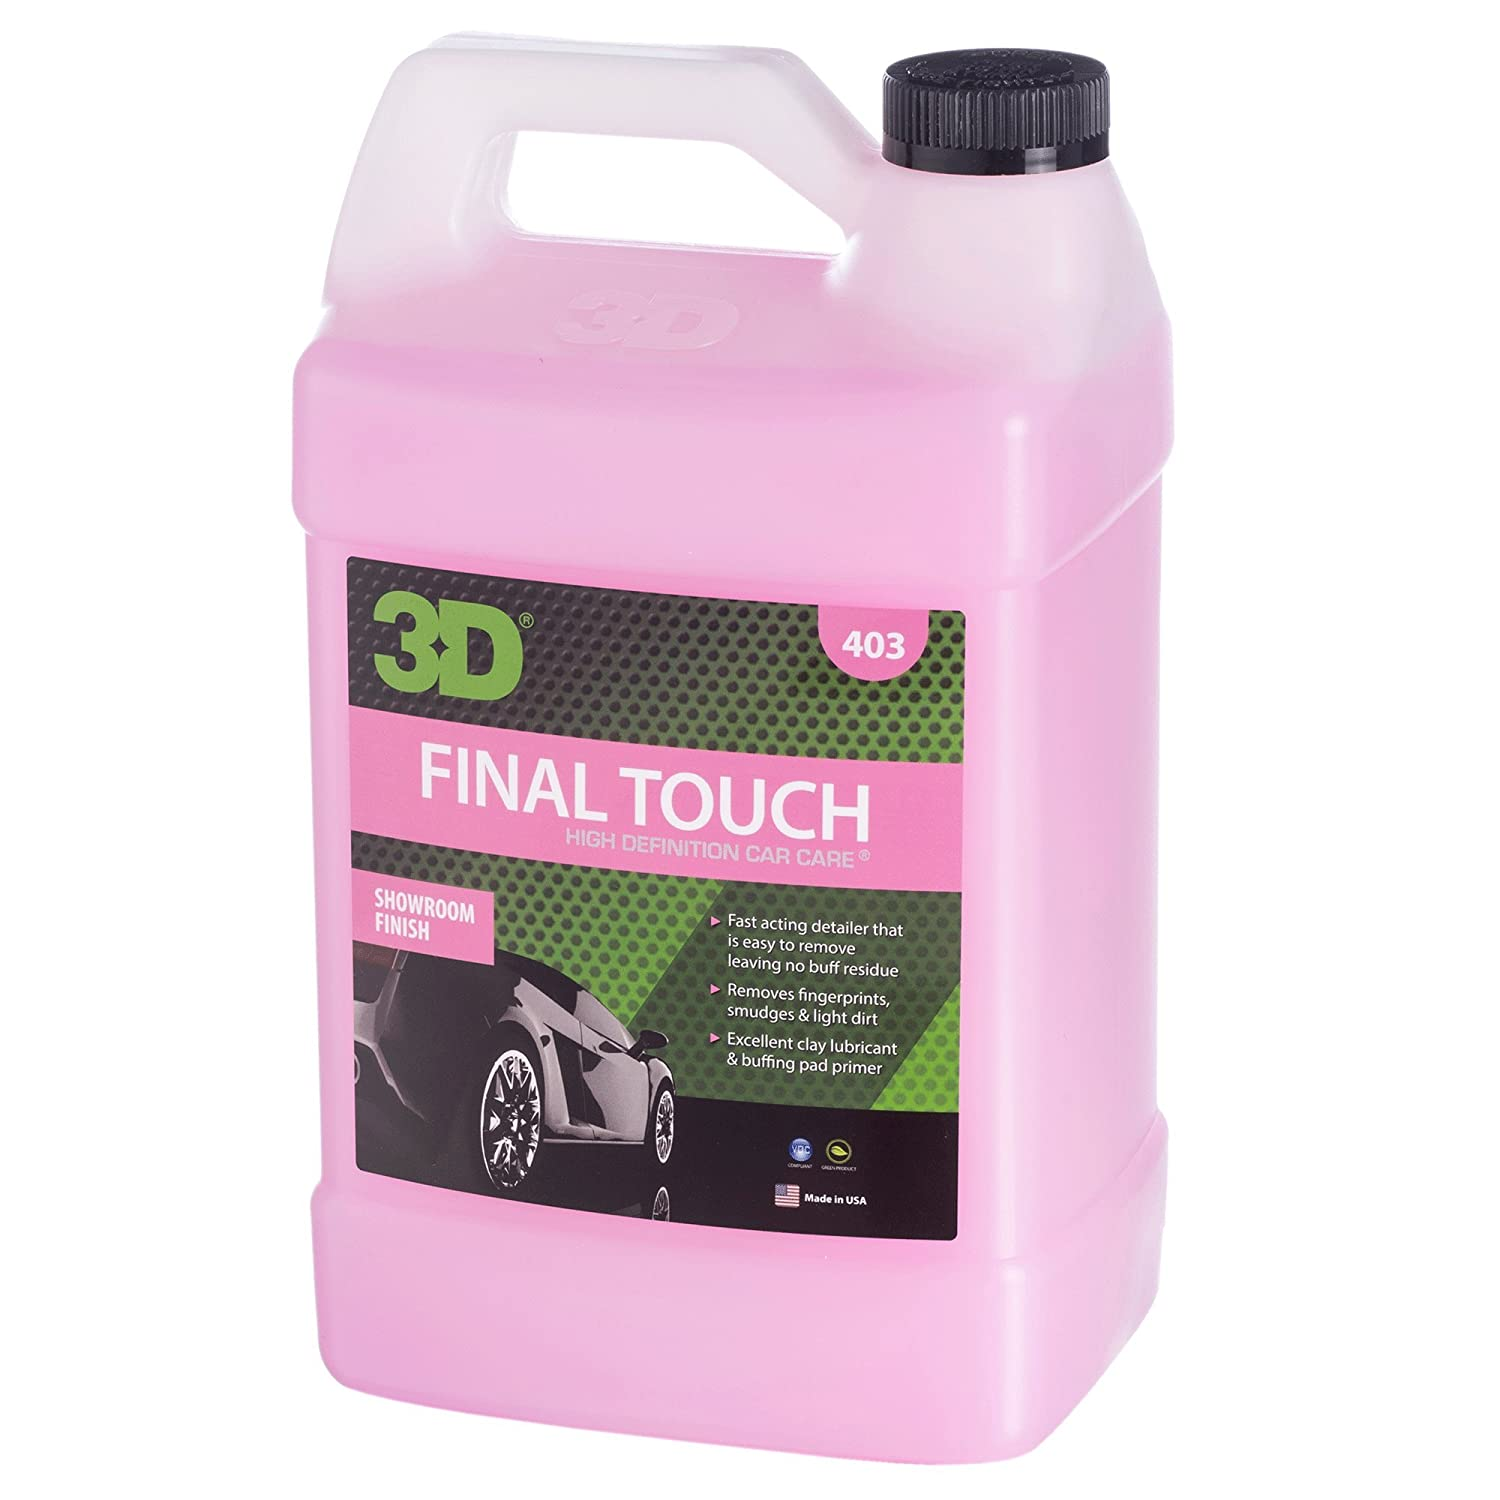 3D Final Touch Waterless Car Wash with Wax Protection - 1 Gallon | Quick Auto Detail | Dry Wash & Express Wax | Made in USA | All Natural | No Harmful Chemicals